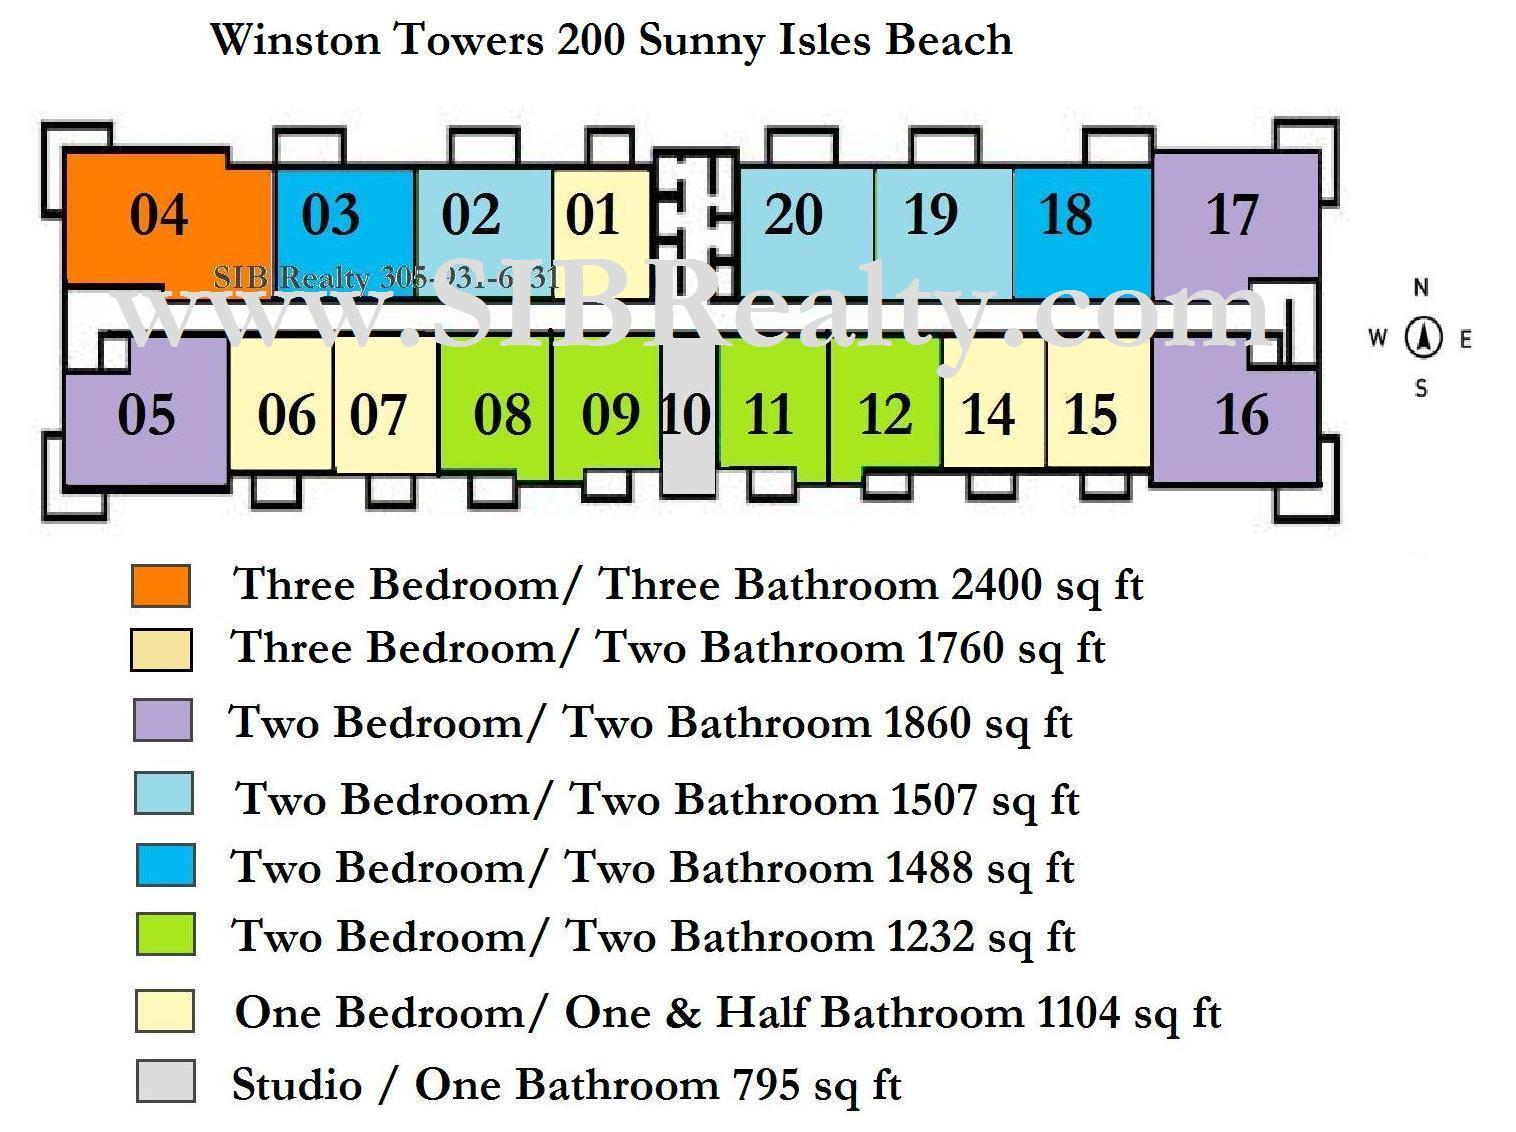 Winston Towers 200 Sunny Isles Beach Site Plan